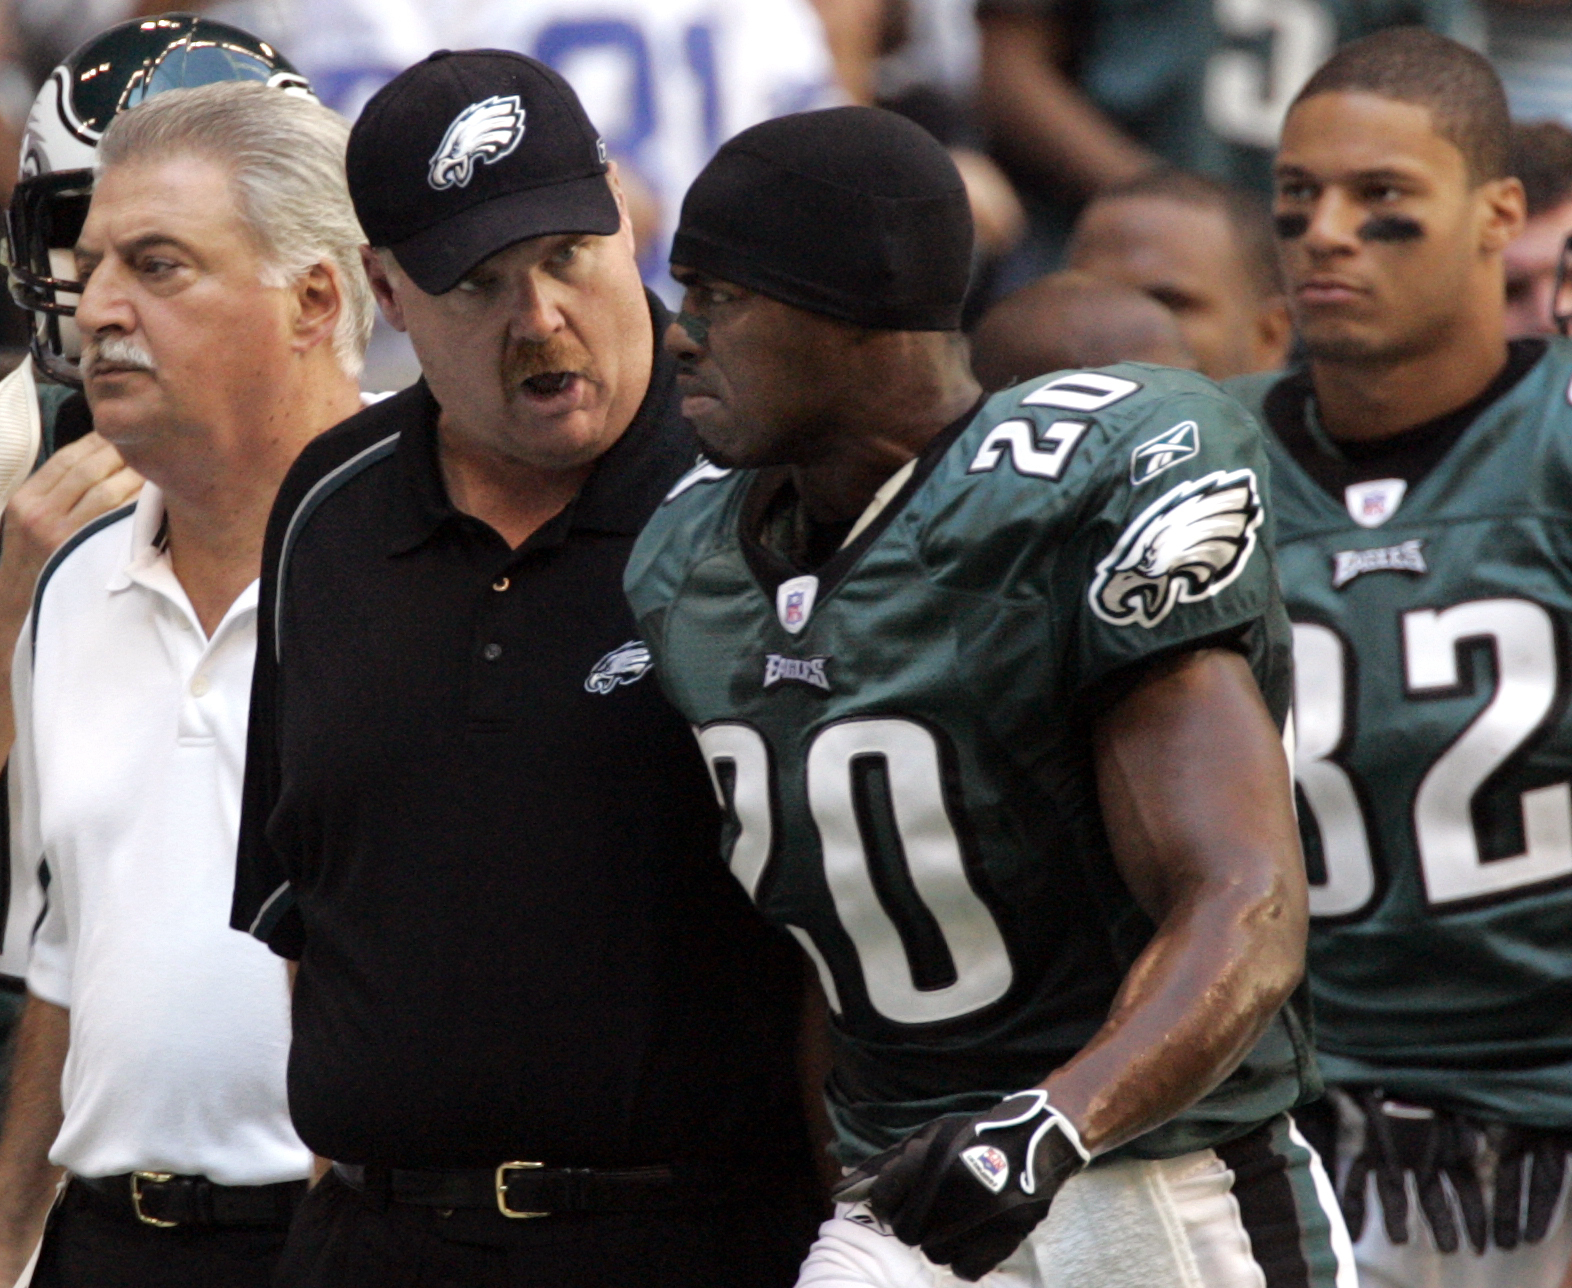 Former Eagles coach Andy Reid has a conversation with Brian Dawkins as Dawkins walks off the field during an October 2005 game.